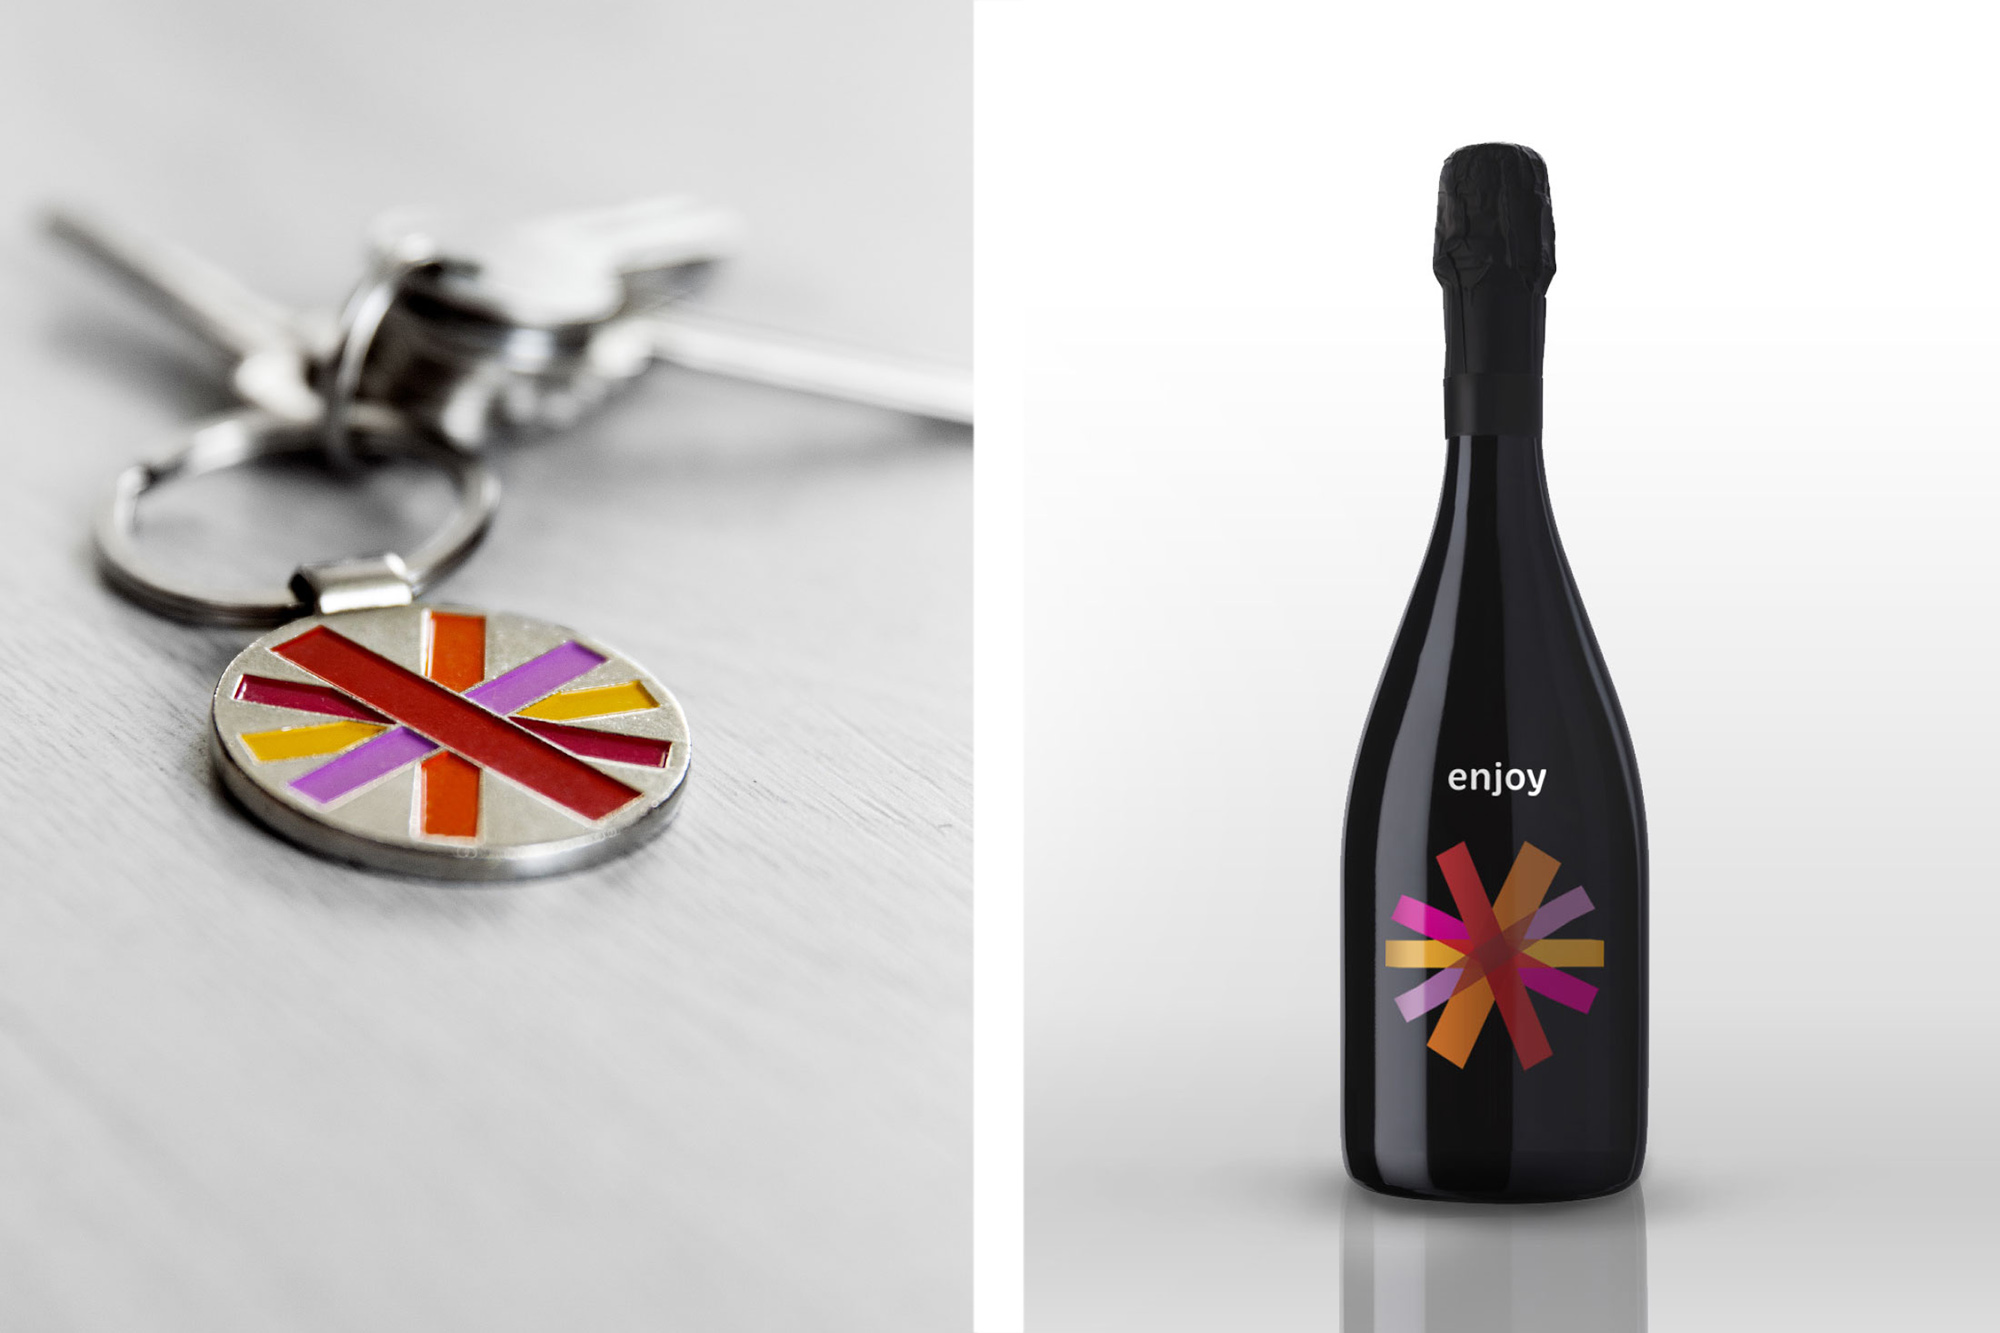 bourkes-keyrings-wine